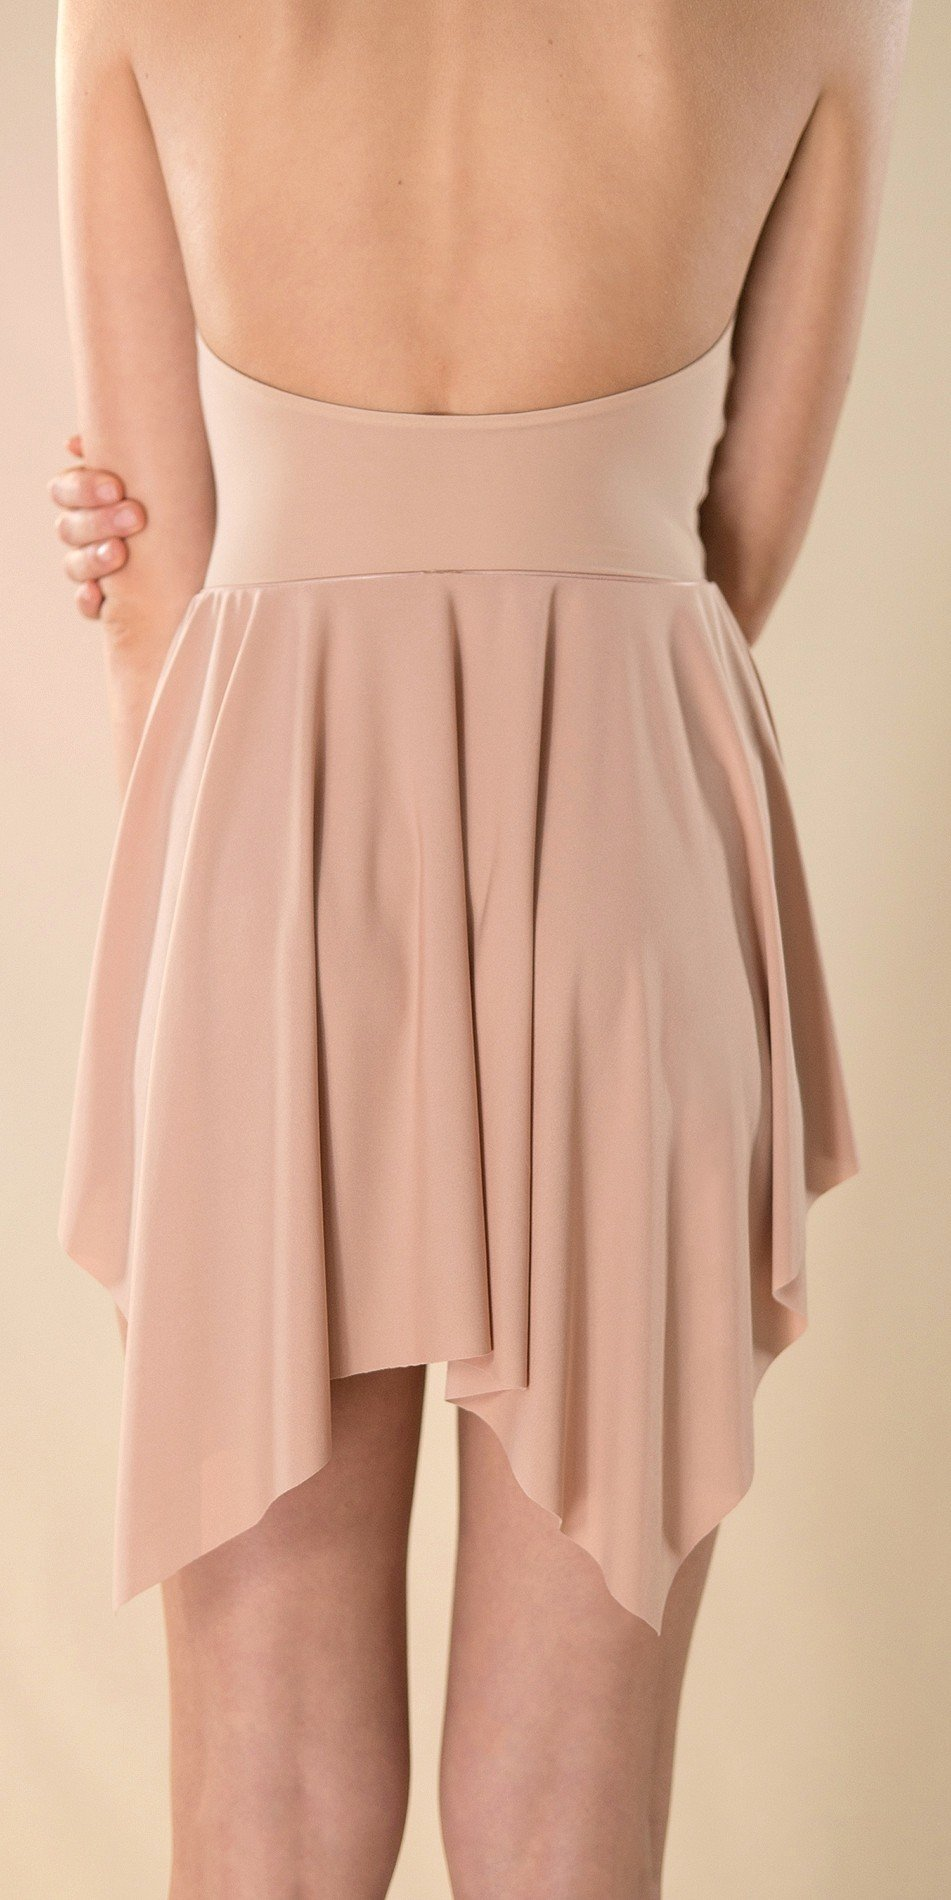 SKINKY nude short skirt 1 r